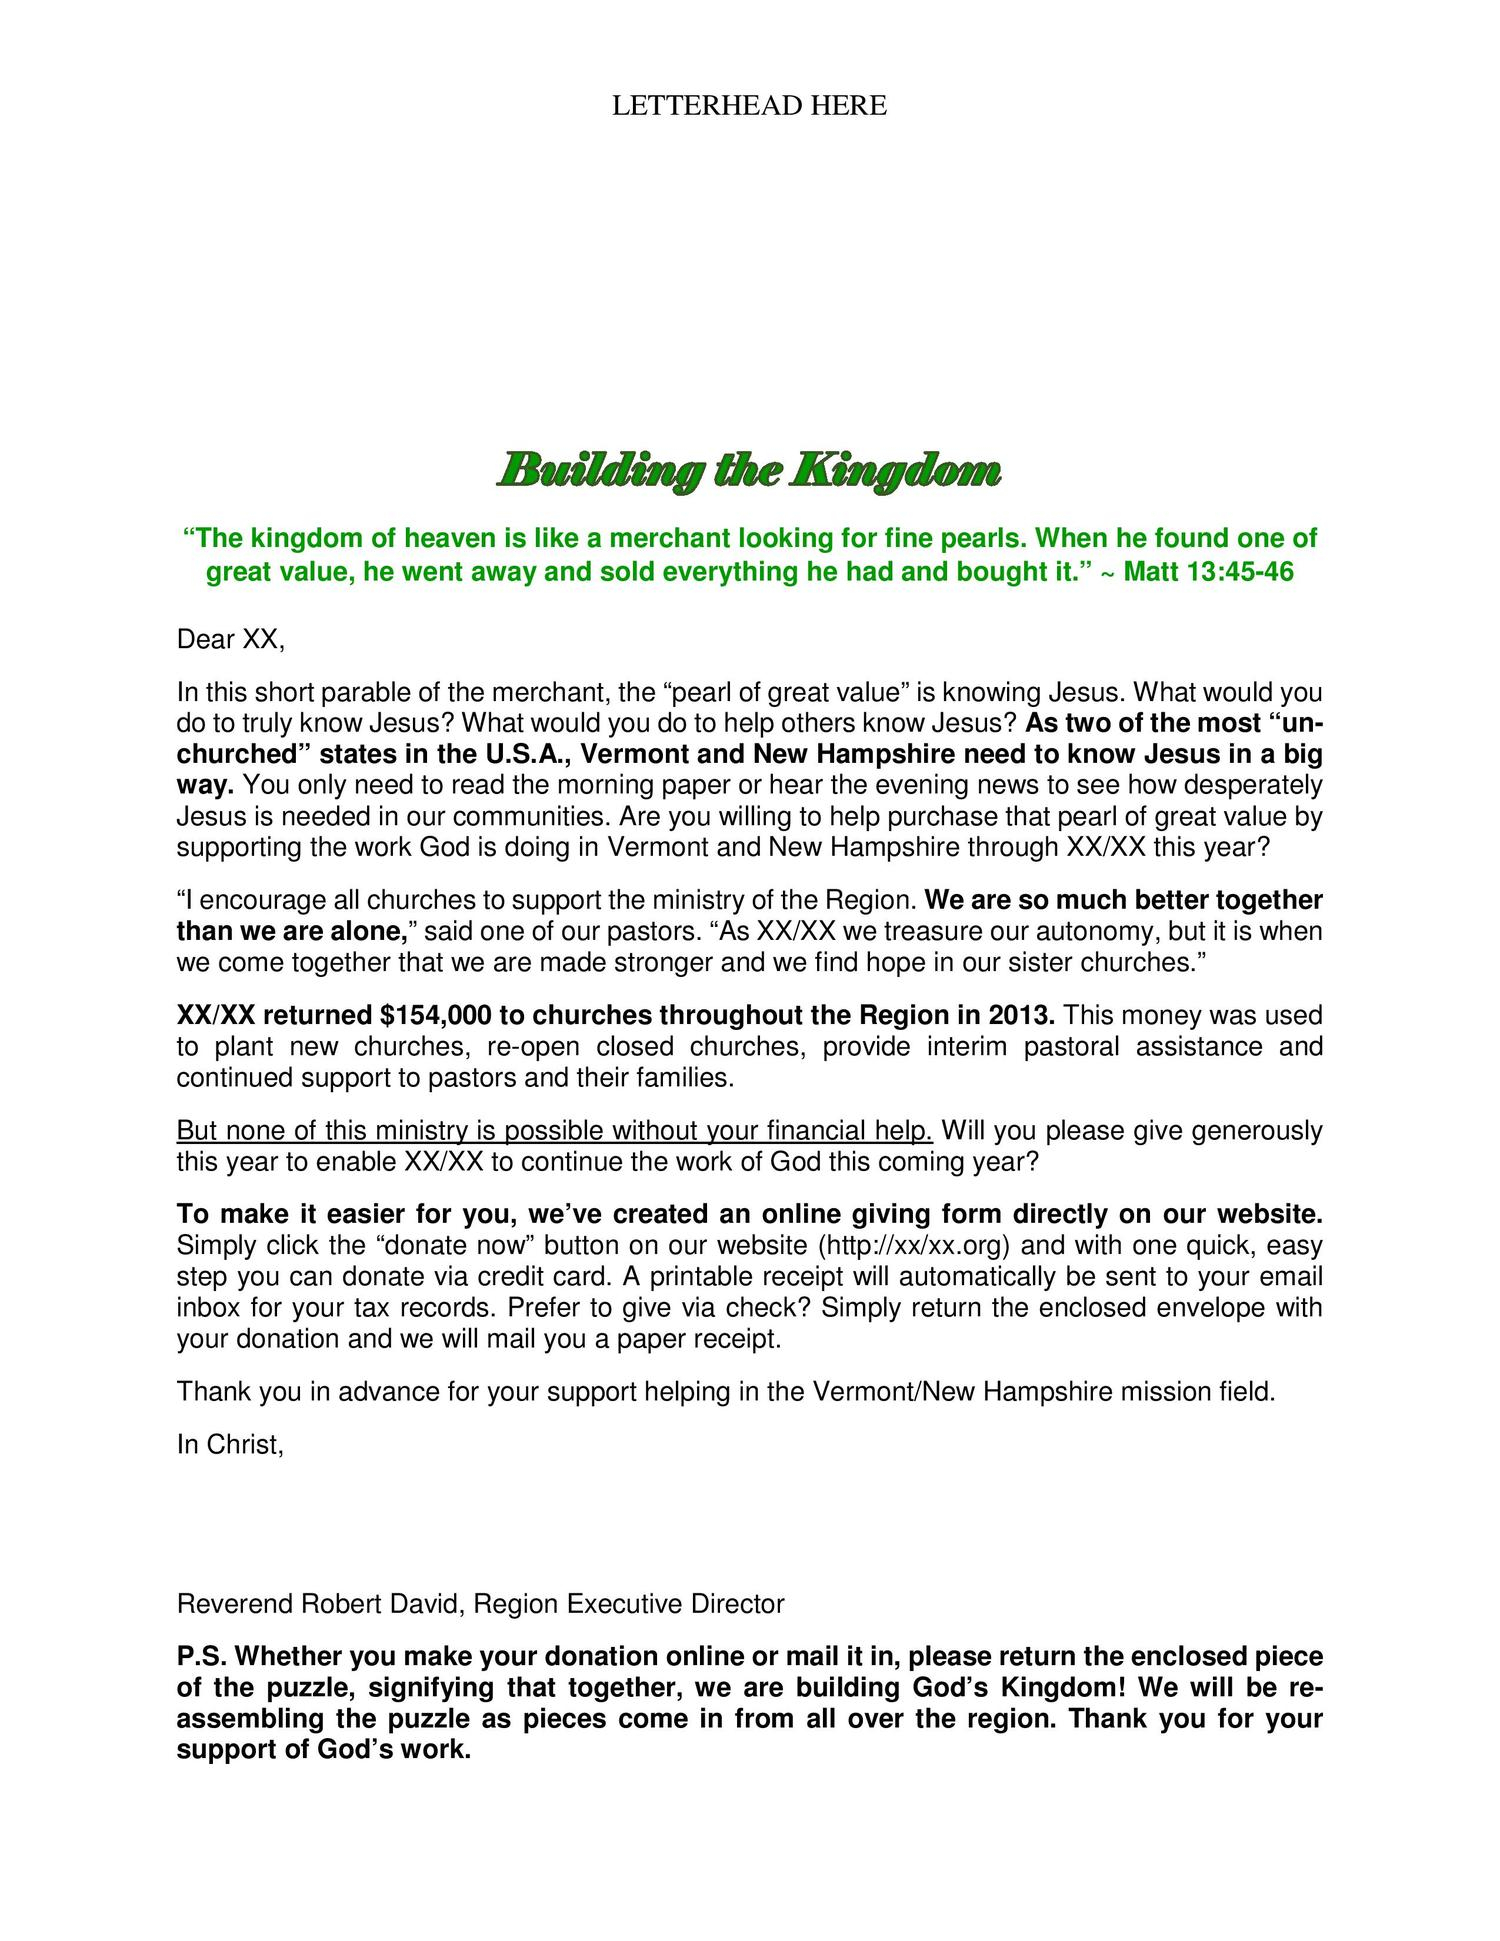 Fundraising Appeal Letter Template - Fundraising Appeal Letters to Grab attention and Get Results by